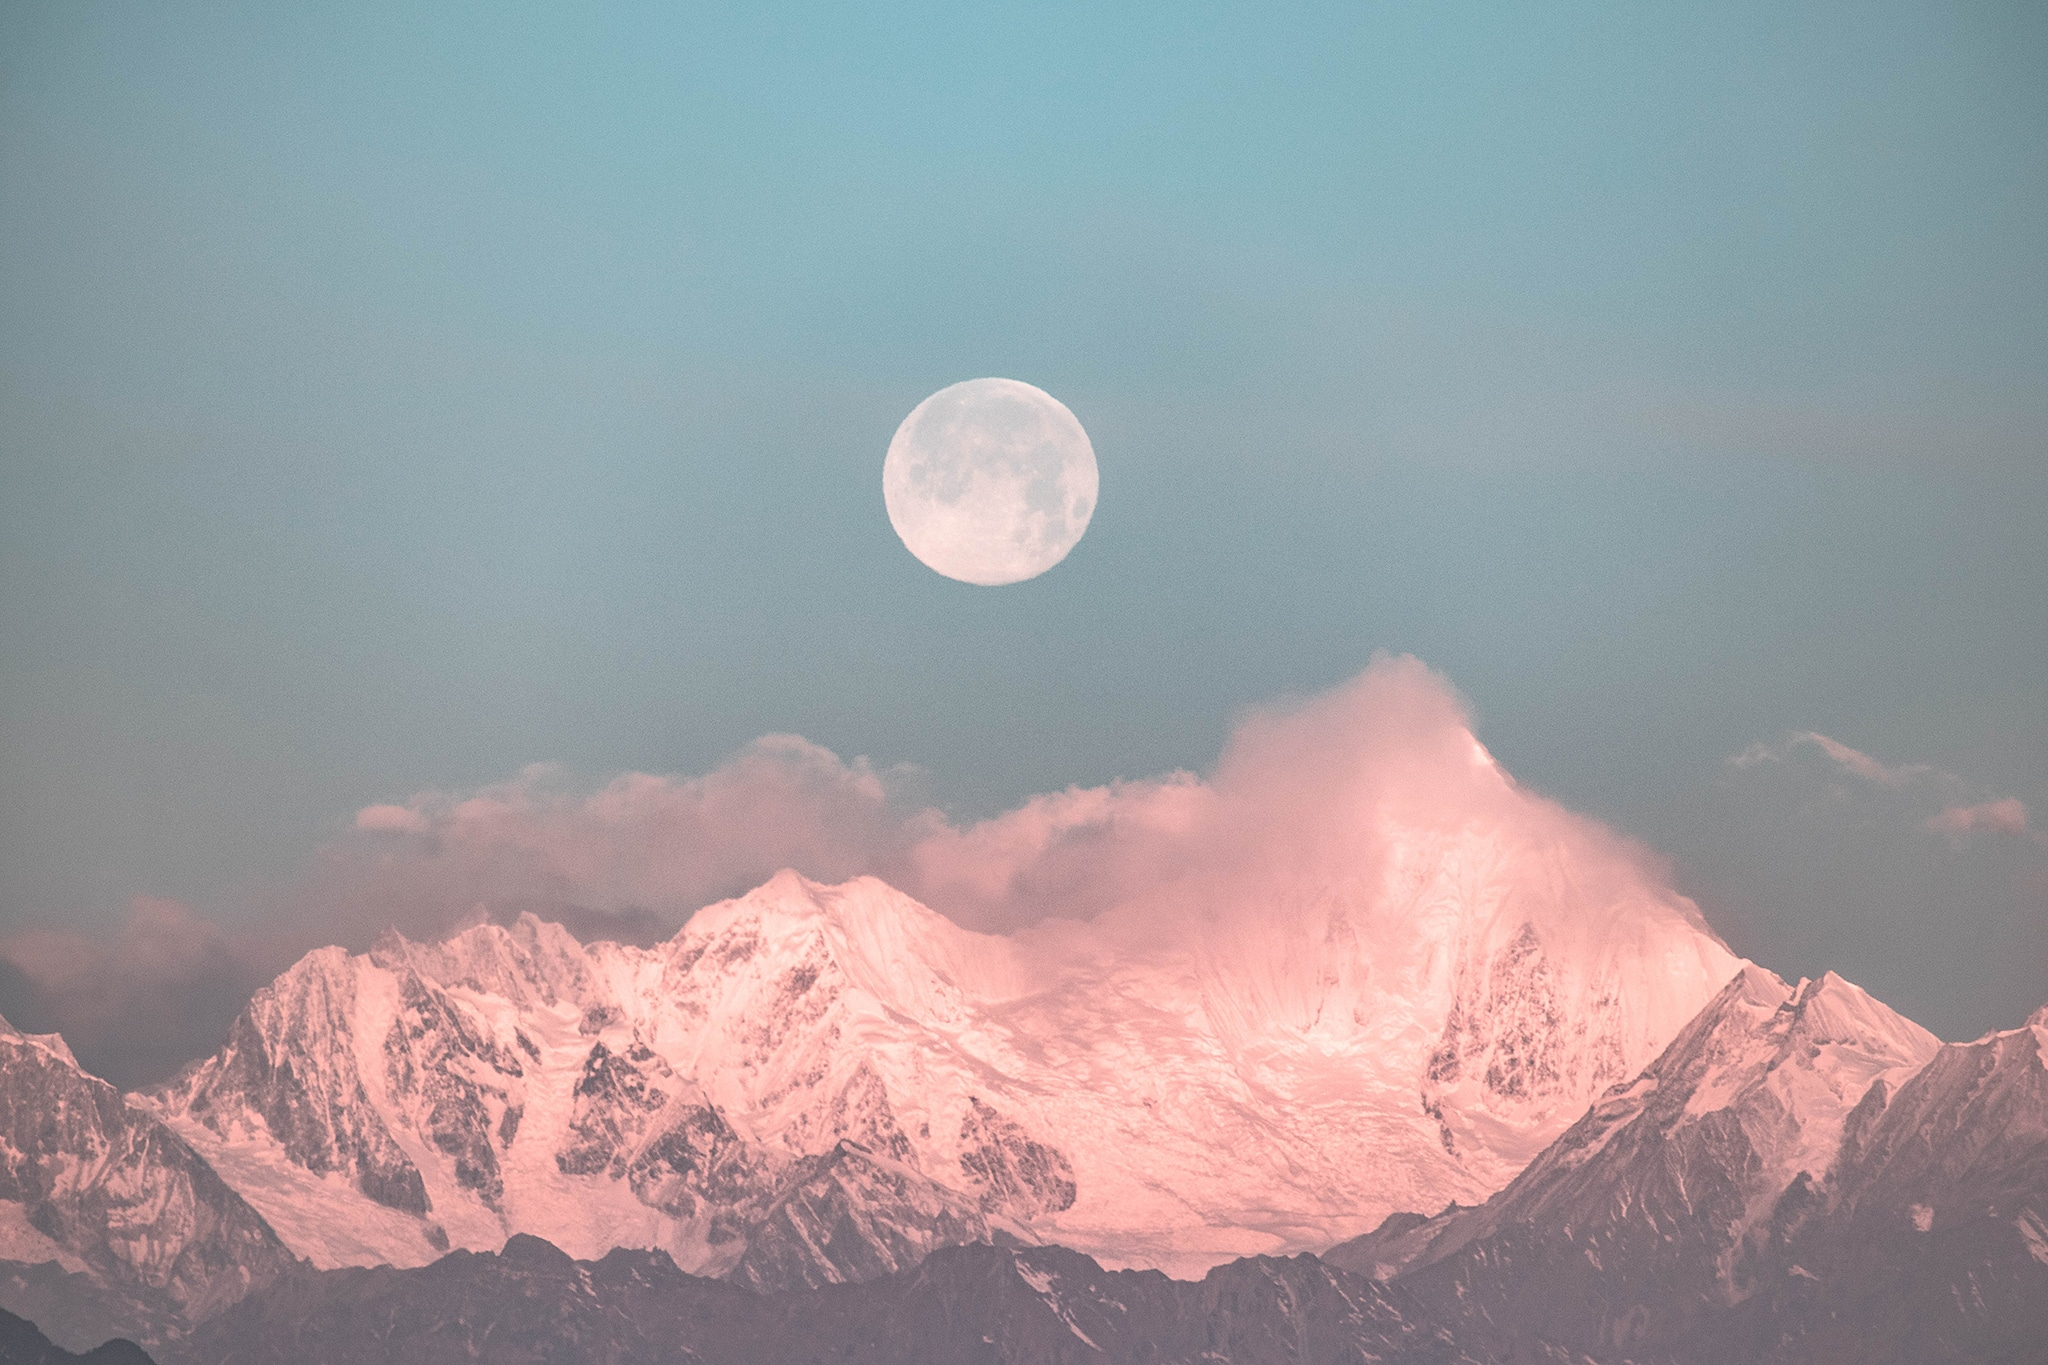 Pale full moon rising over snow-capped mountains